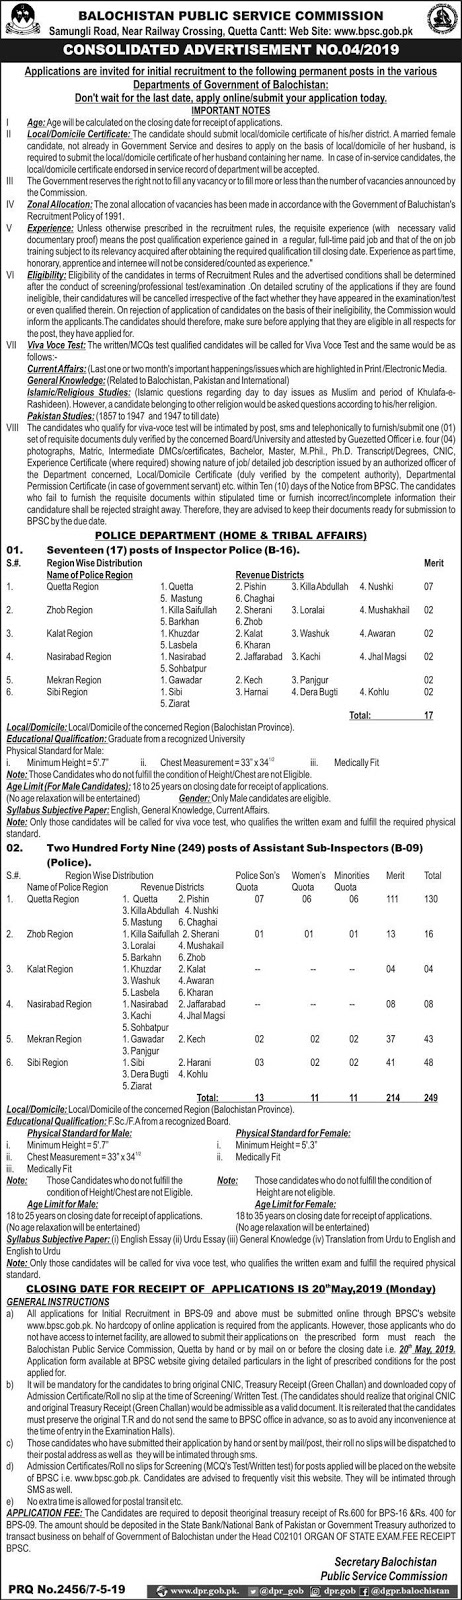 BPSC Inspector Jobs , BPSC ASI and Police Inspector Jobs 2019 May